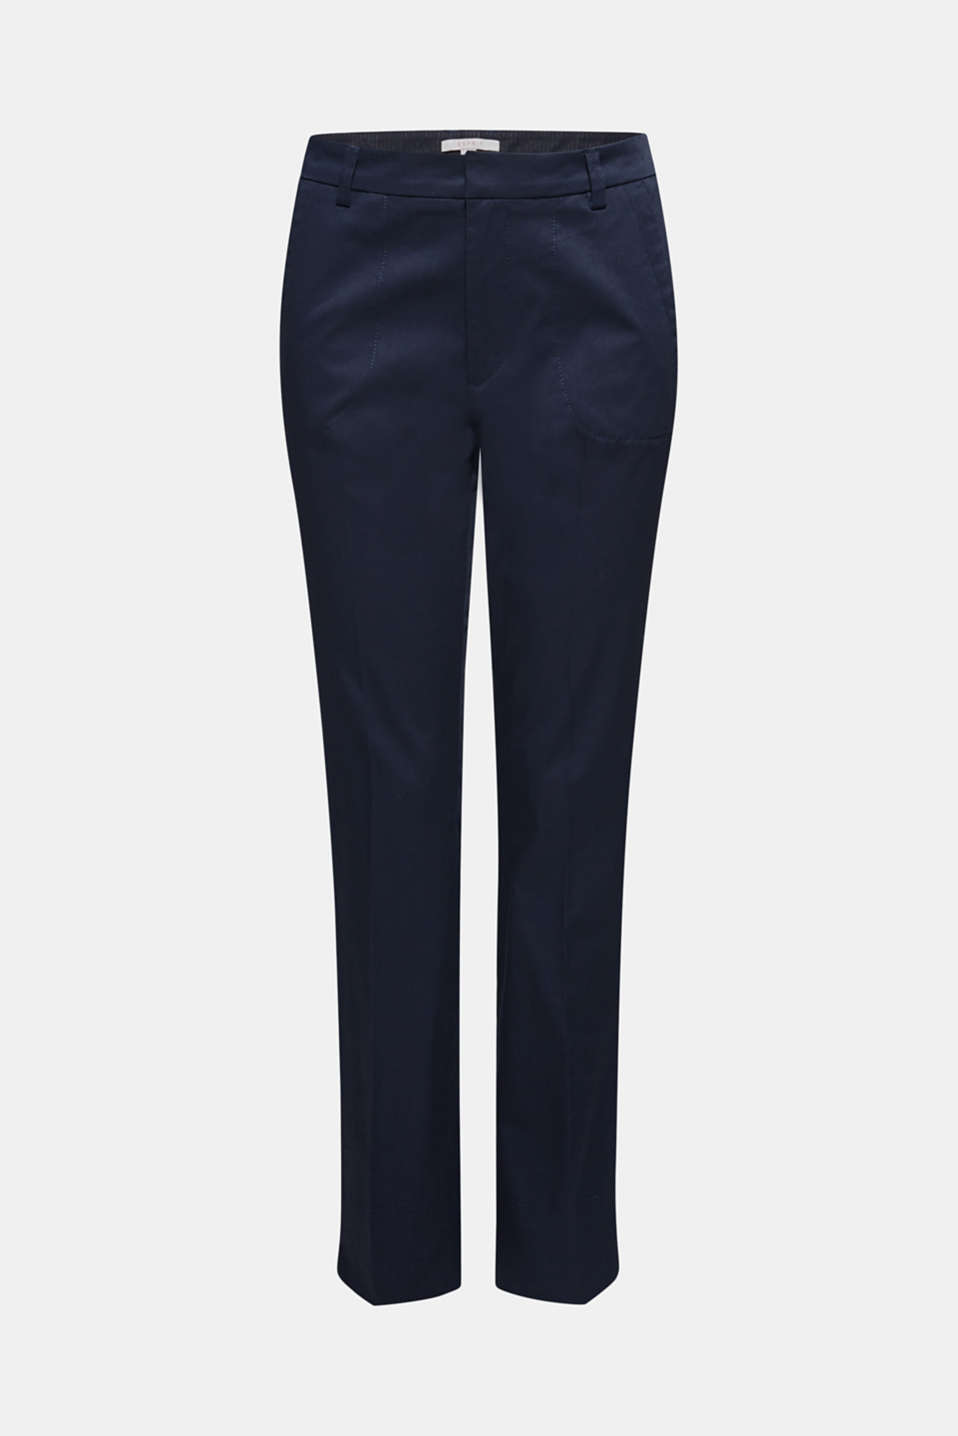 Cotton twill chinos, NAVY, detail image number 6